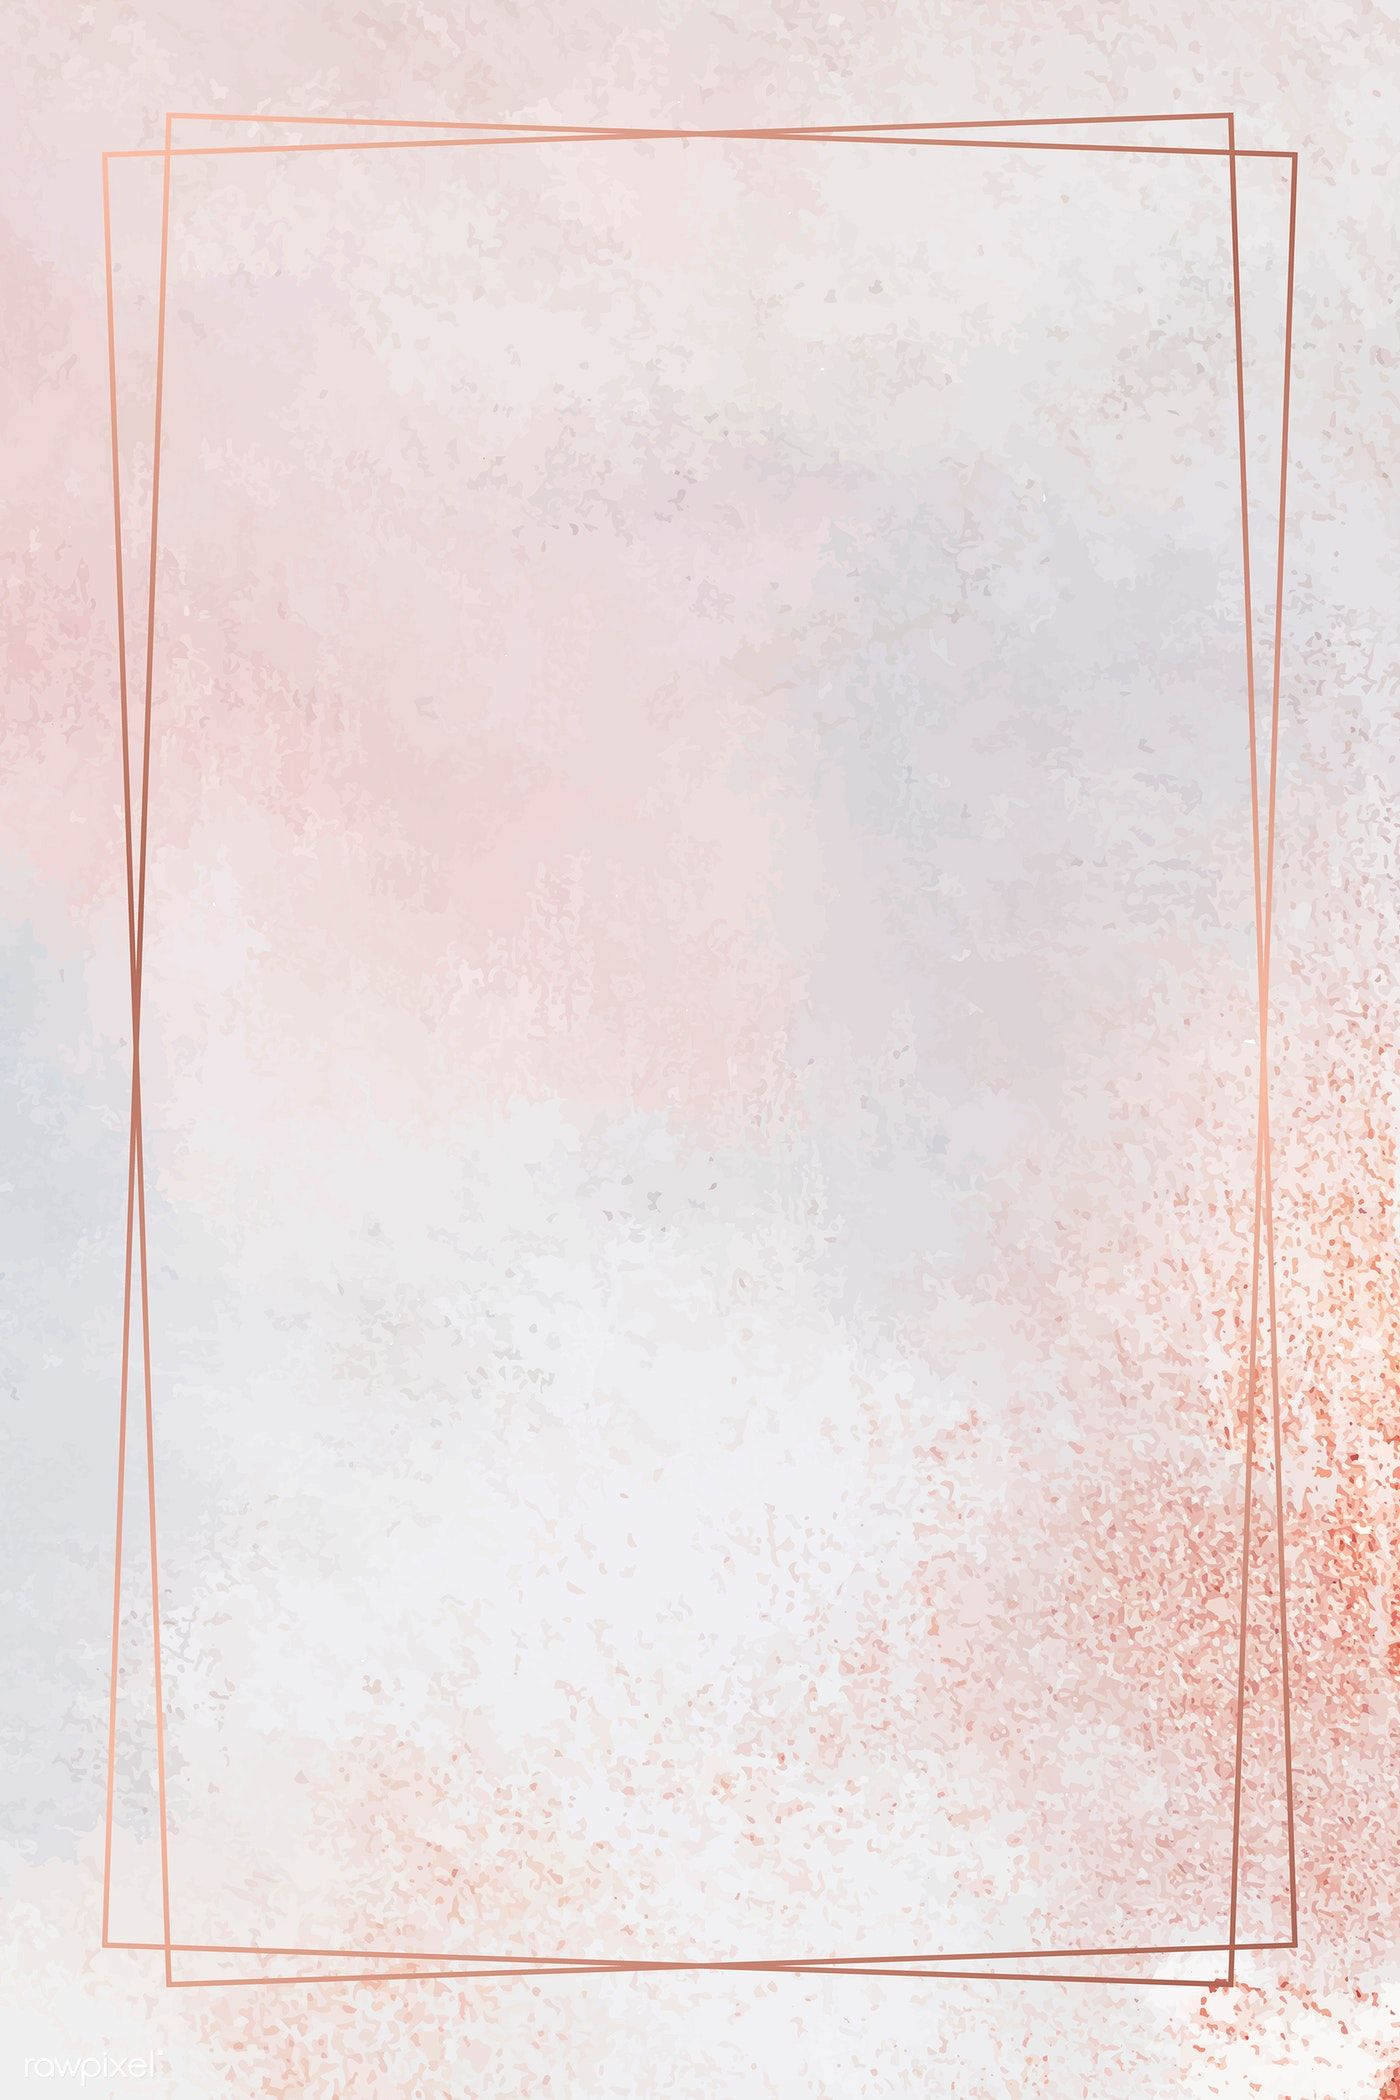 Download premium vector of Rectangle copper frame on pastel background vector by Ning about orange  background, background, metallic colour backgrounds, pastel background, and rectangle background 1221766